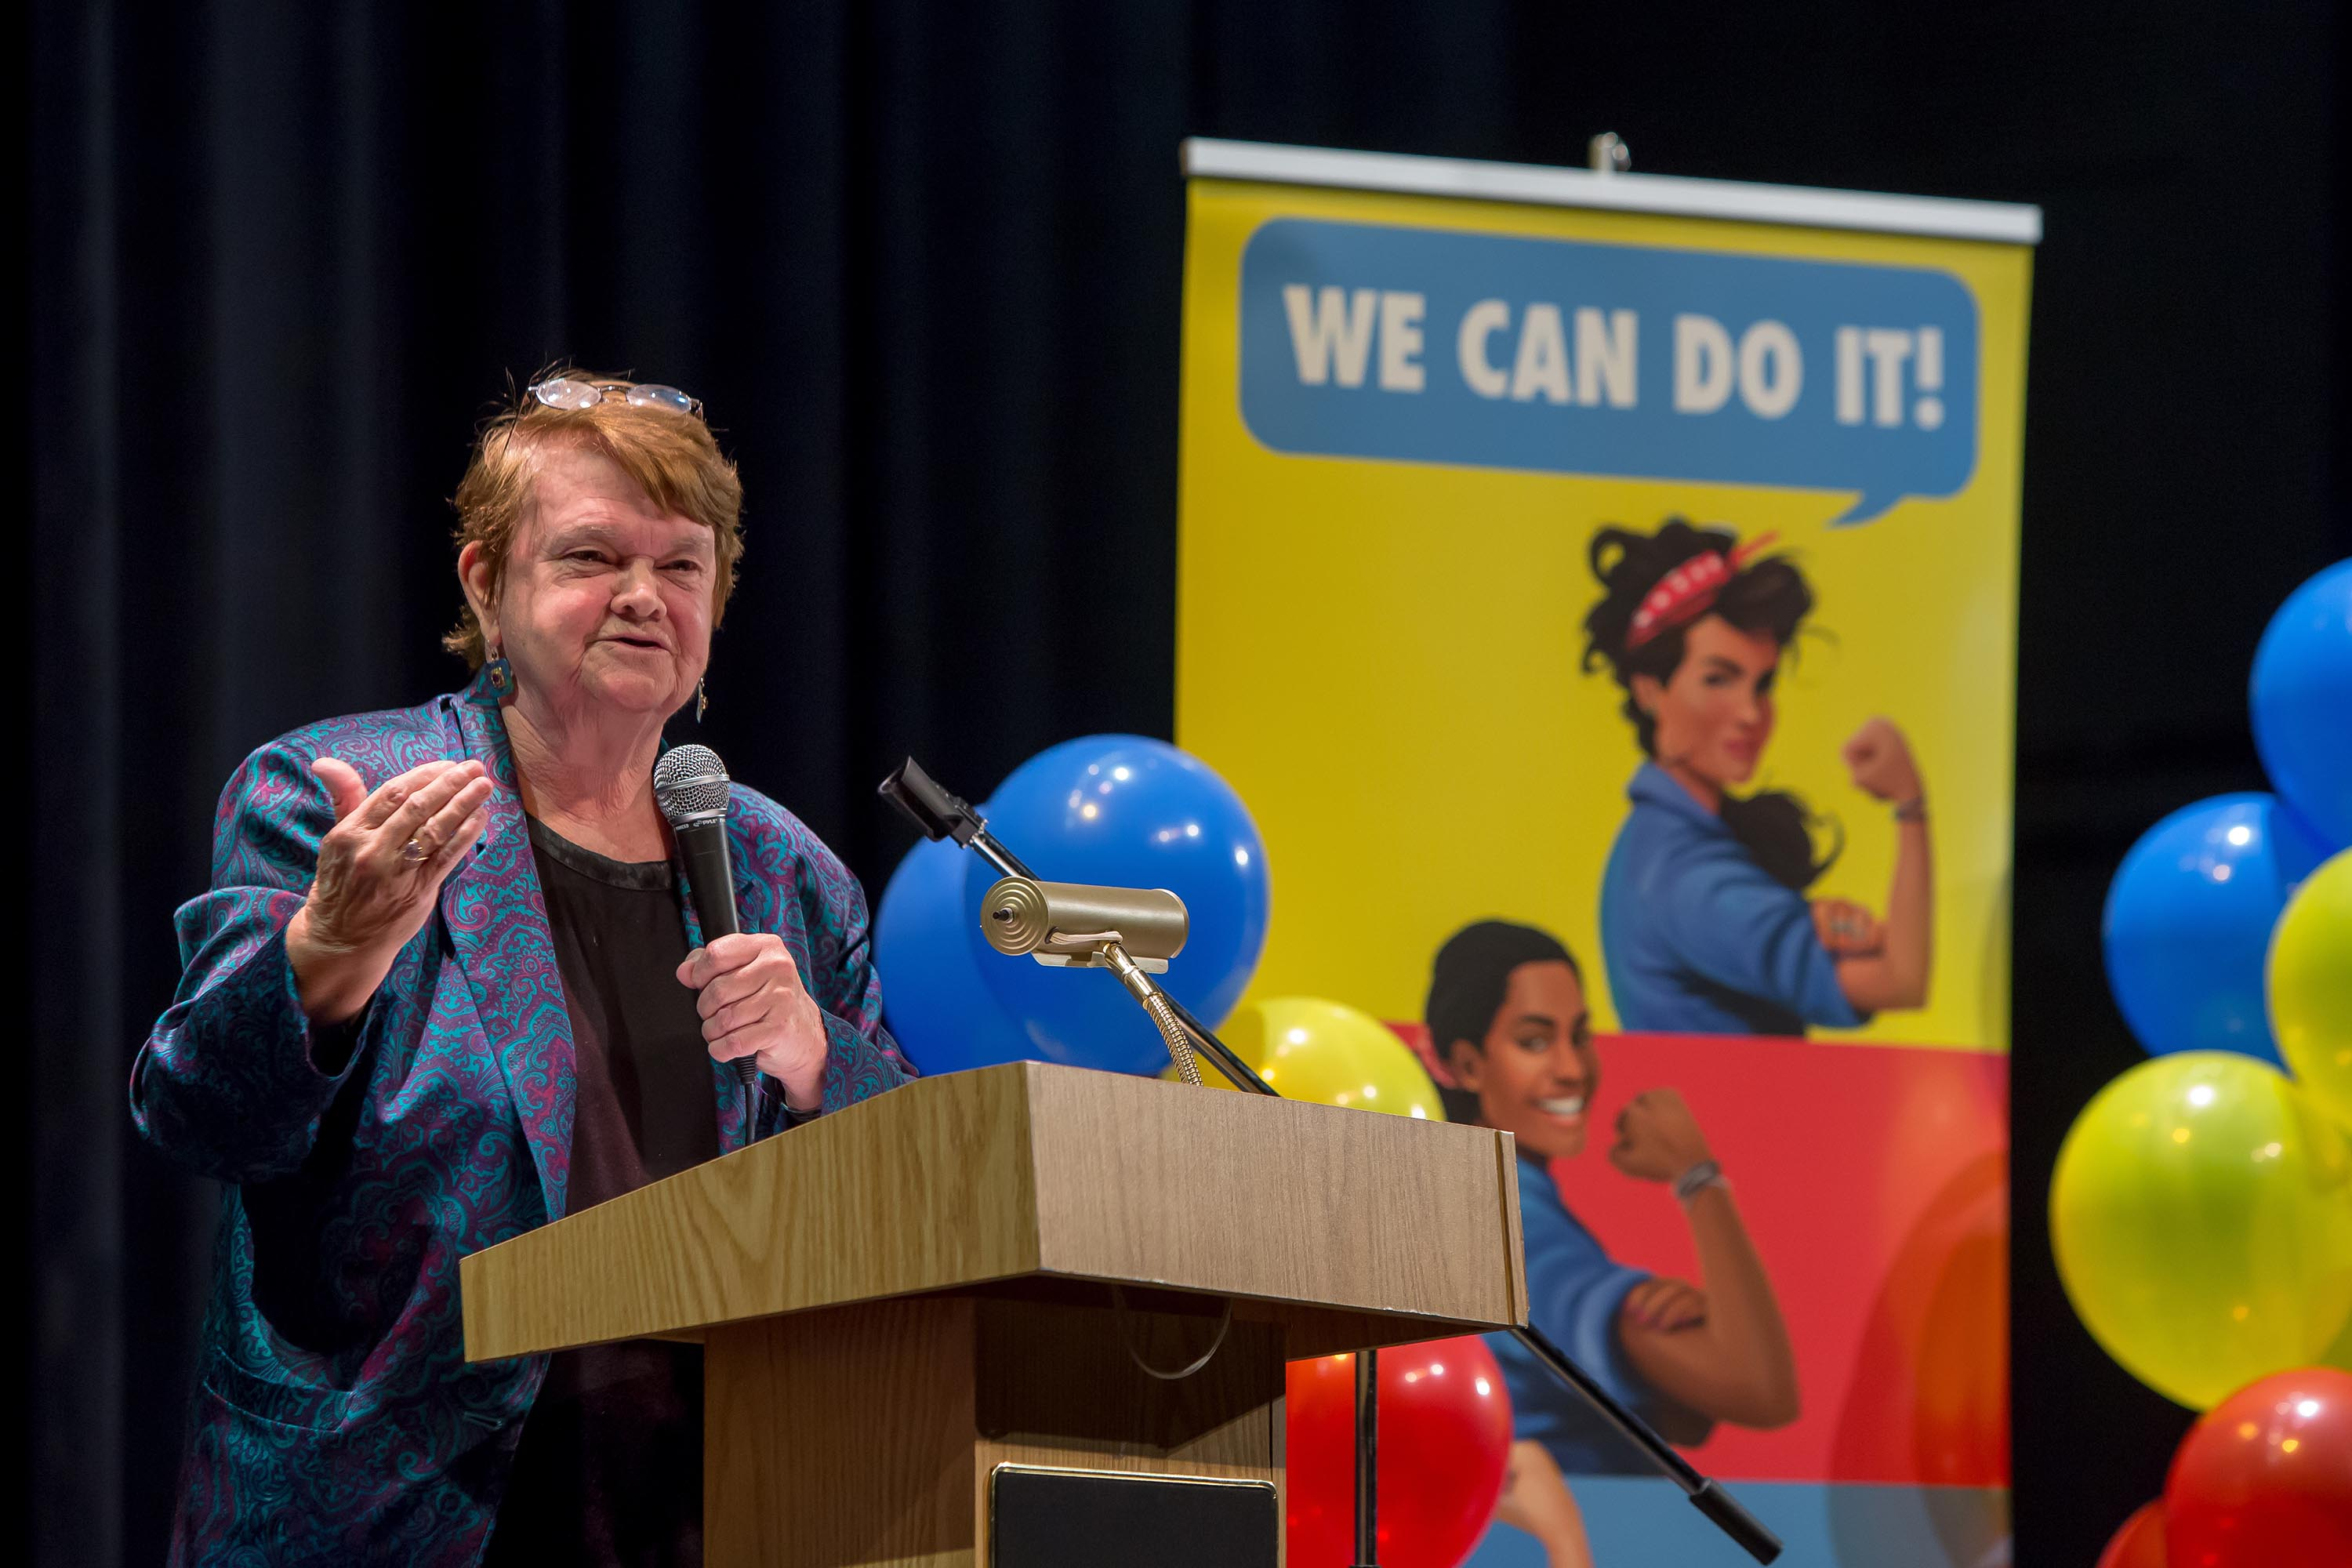 District 3 – Supervisor Sheila Kuehl<br>  <b>May 13, 2017 - Girls Build LA Expo.</b><br>   <i>Photo by Monica Almeida / For the Board of Supervisors</i>